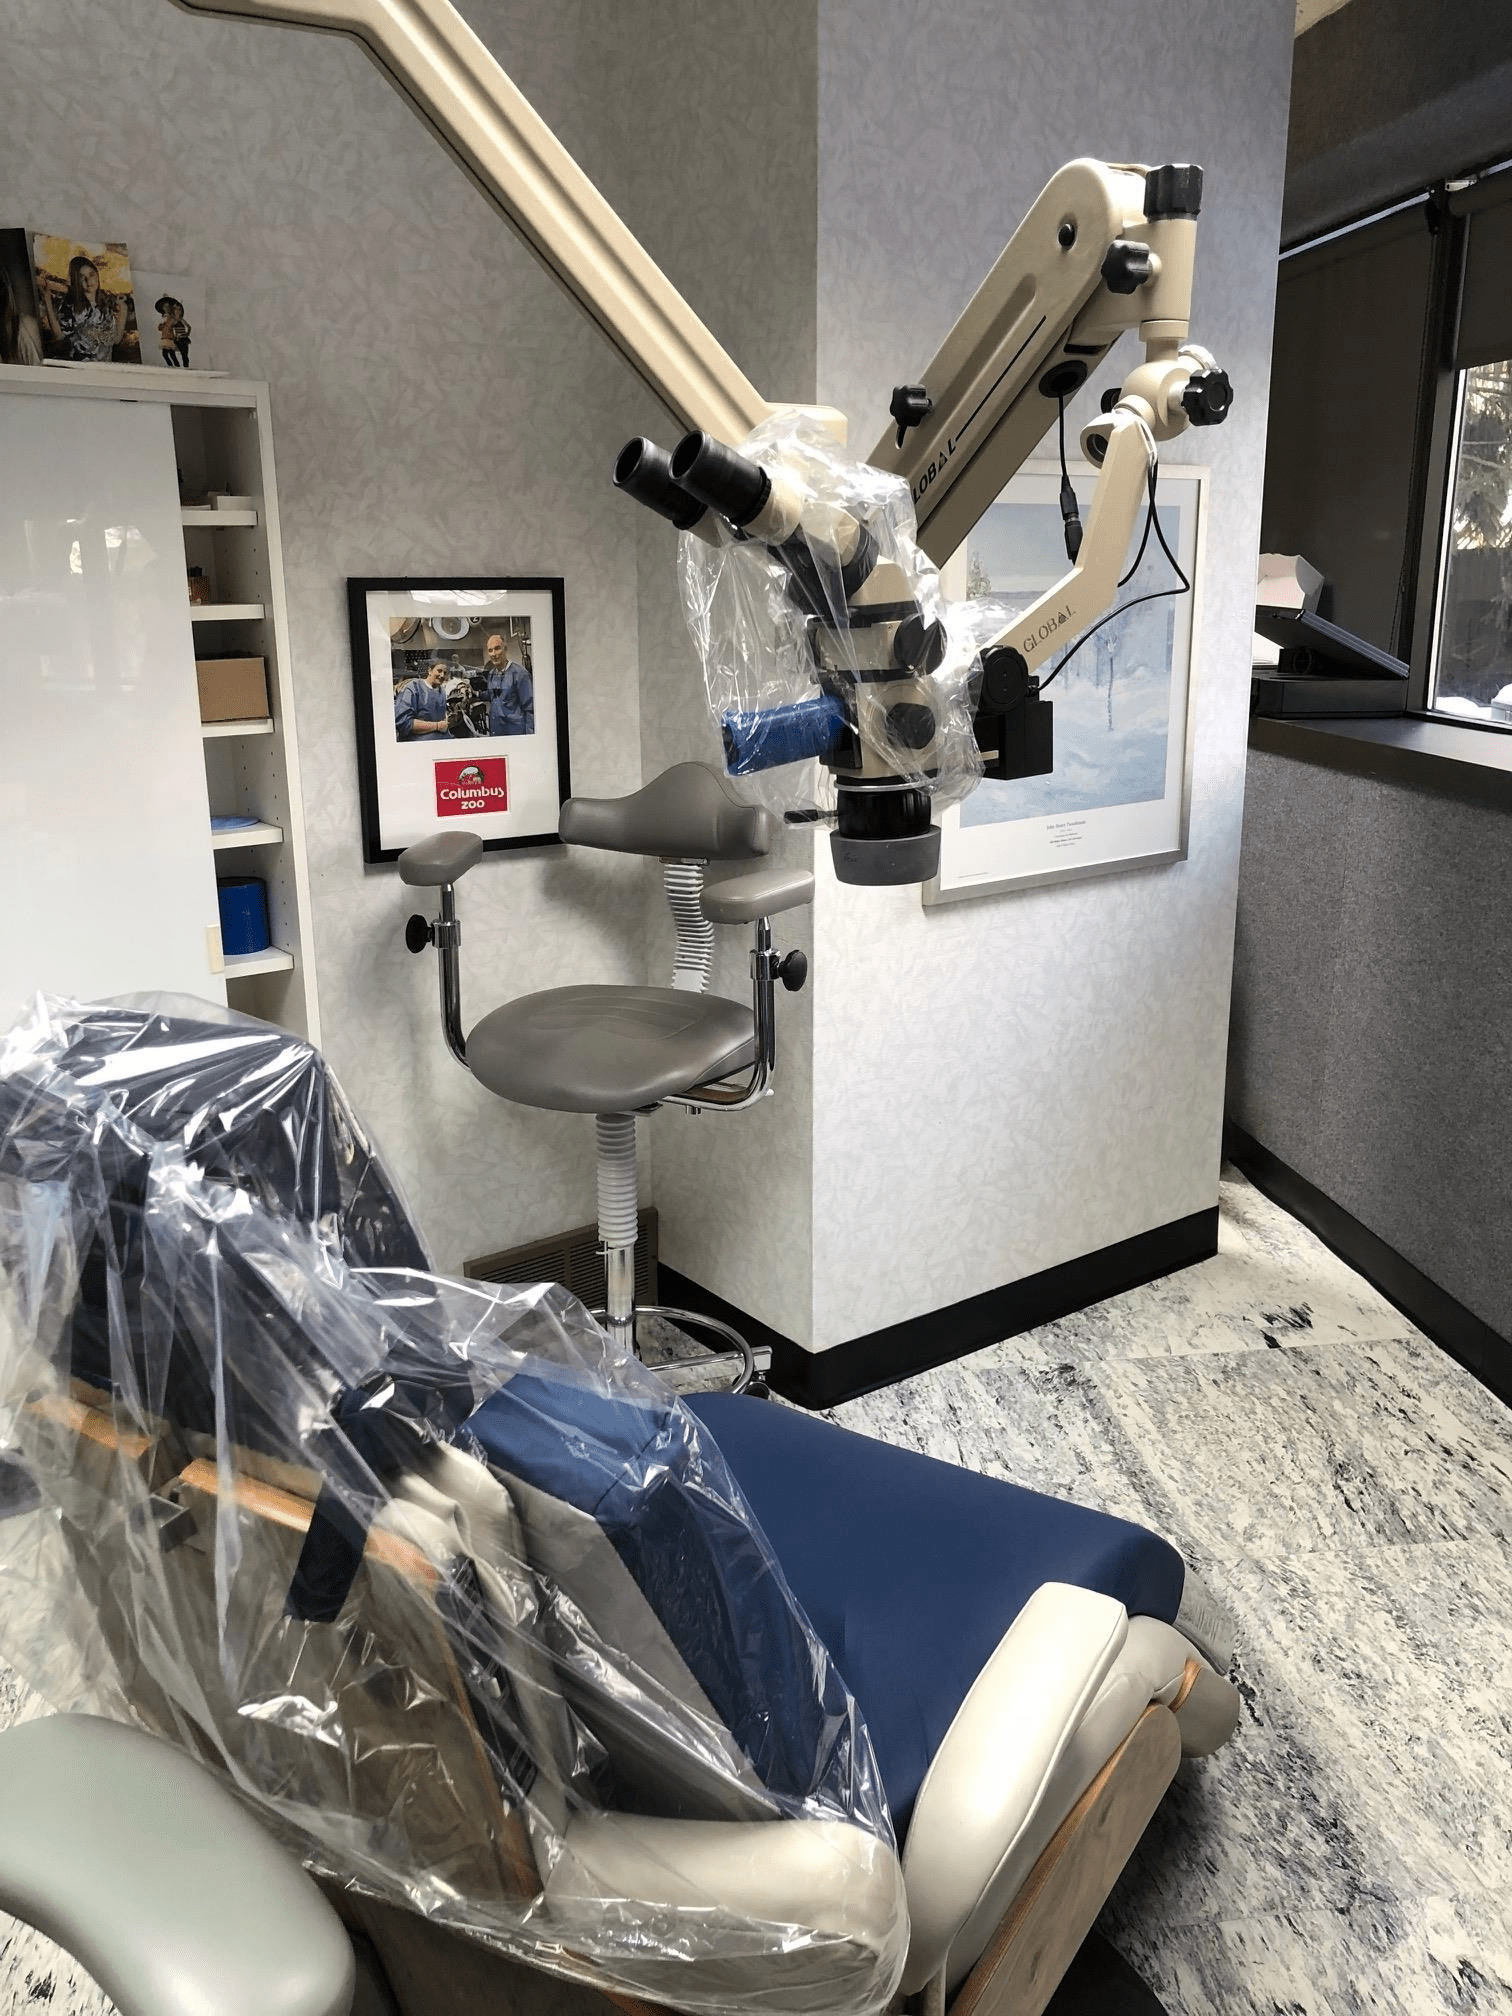 Operatory with a Microscope